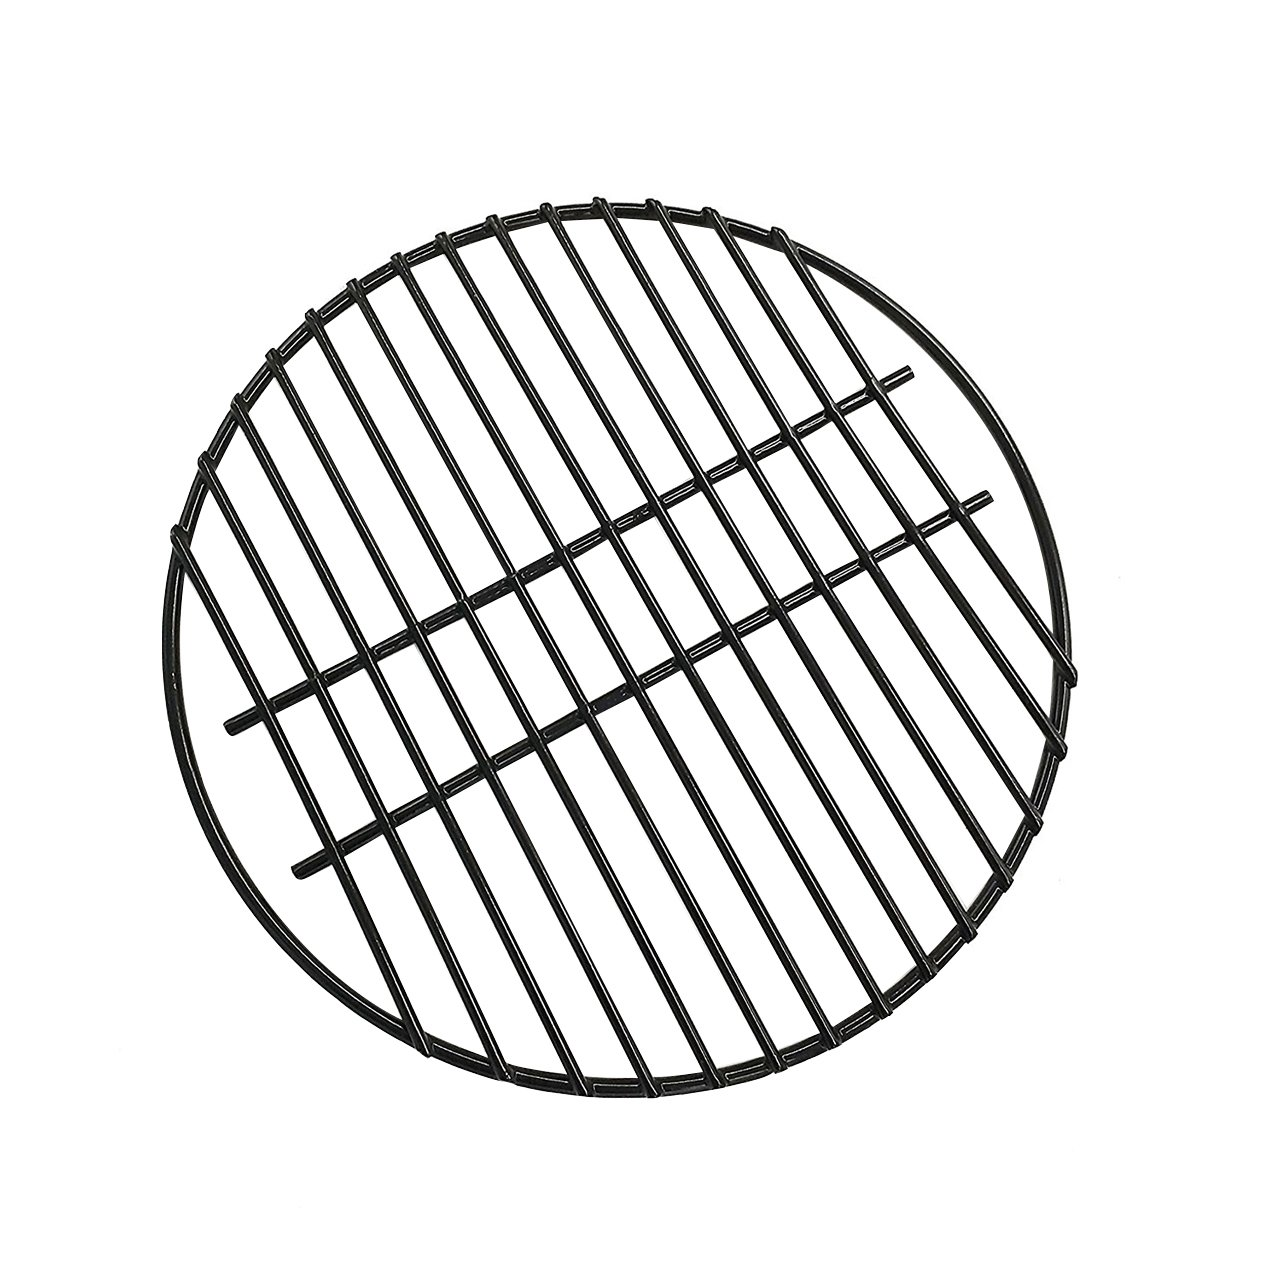 BBQ 18 Porcelain Coated Steel Wire Round Cooking Grate Grid Fit for Large Big Green Egg and Other Kamado Joe Grill, Perfect Replacement Grate for Grill Wanray